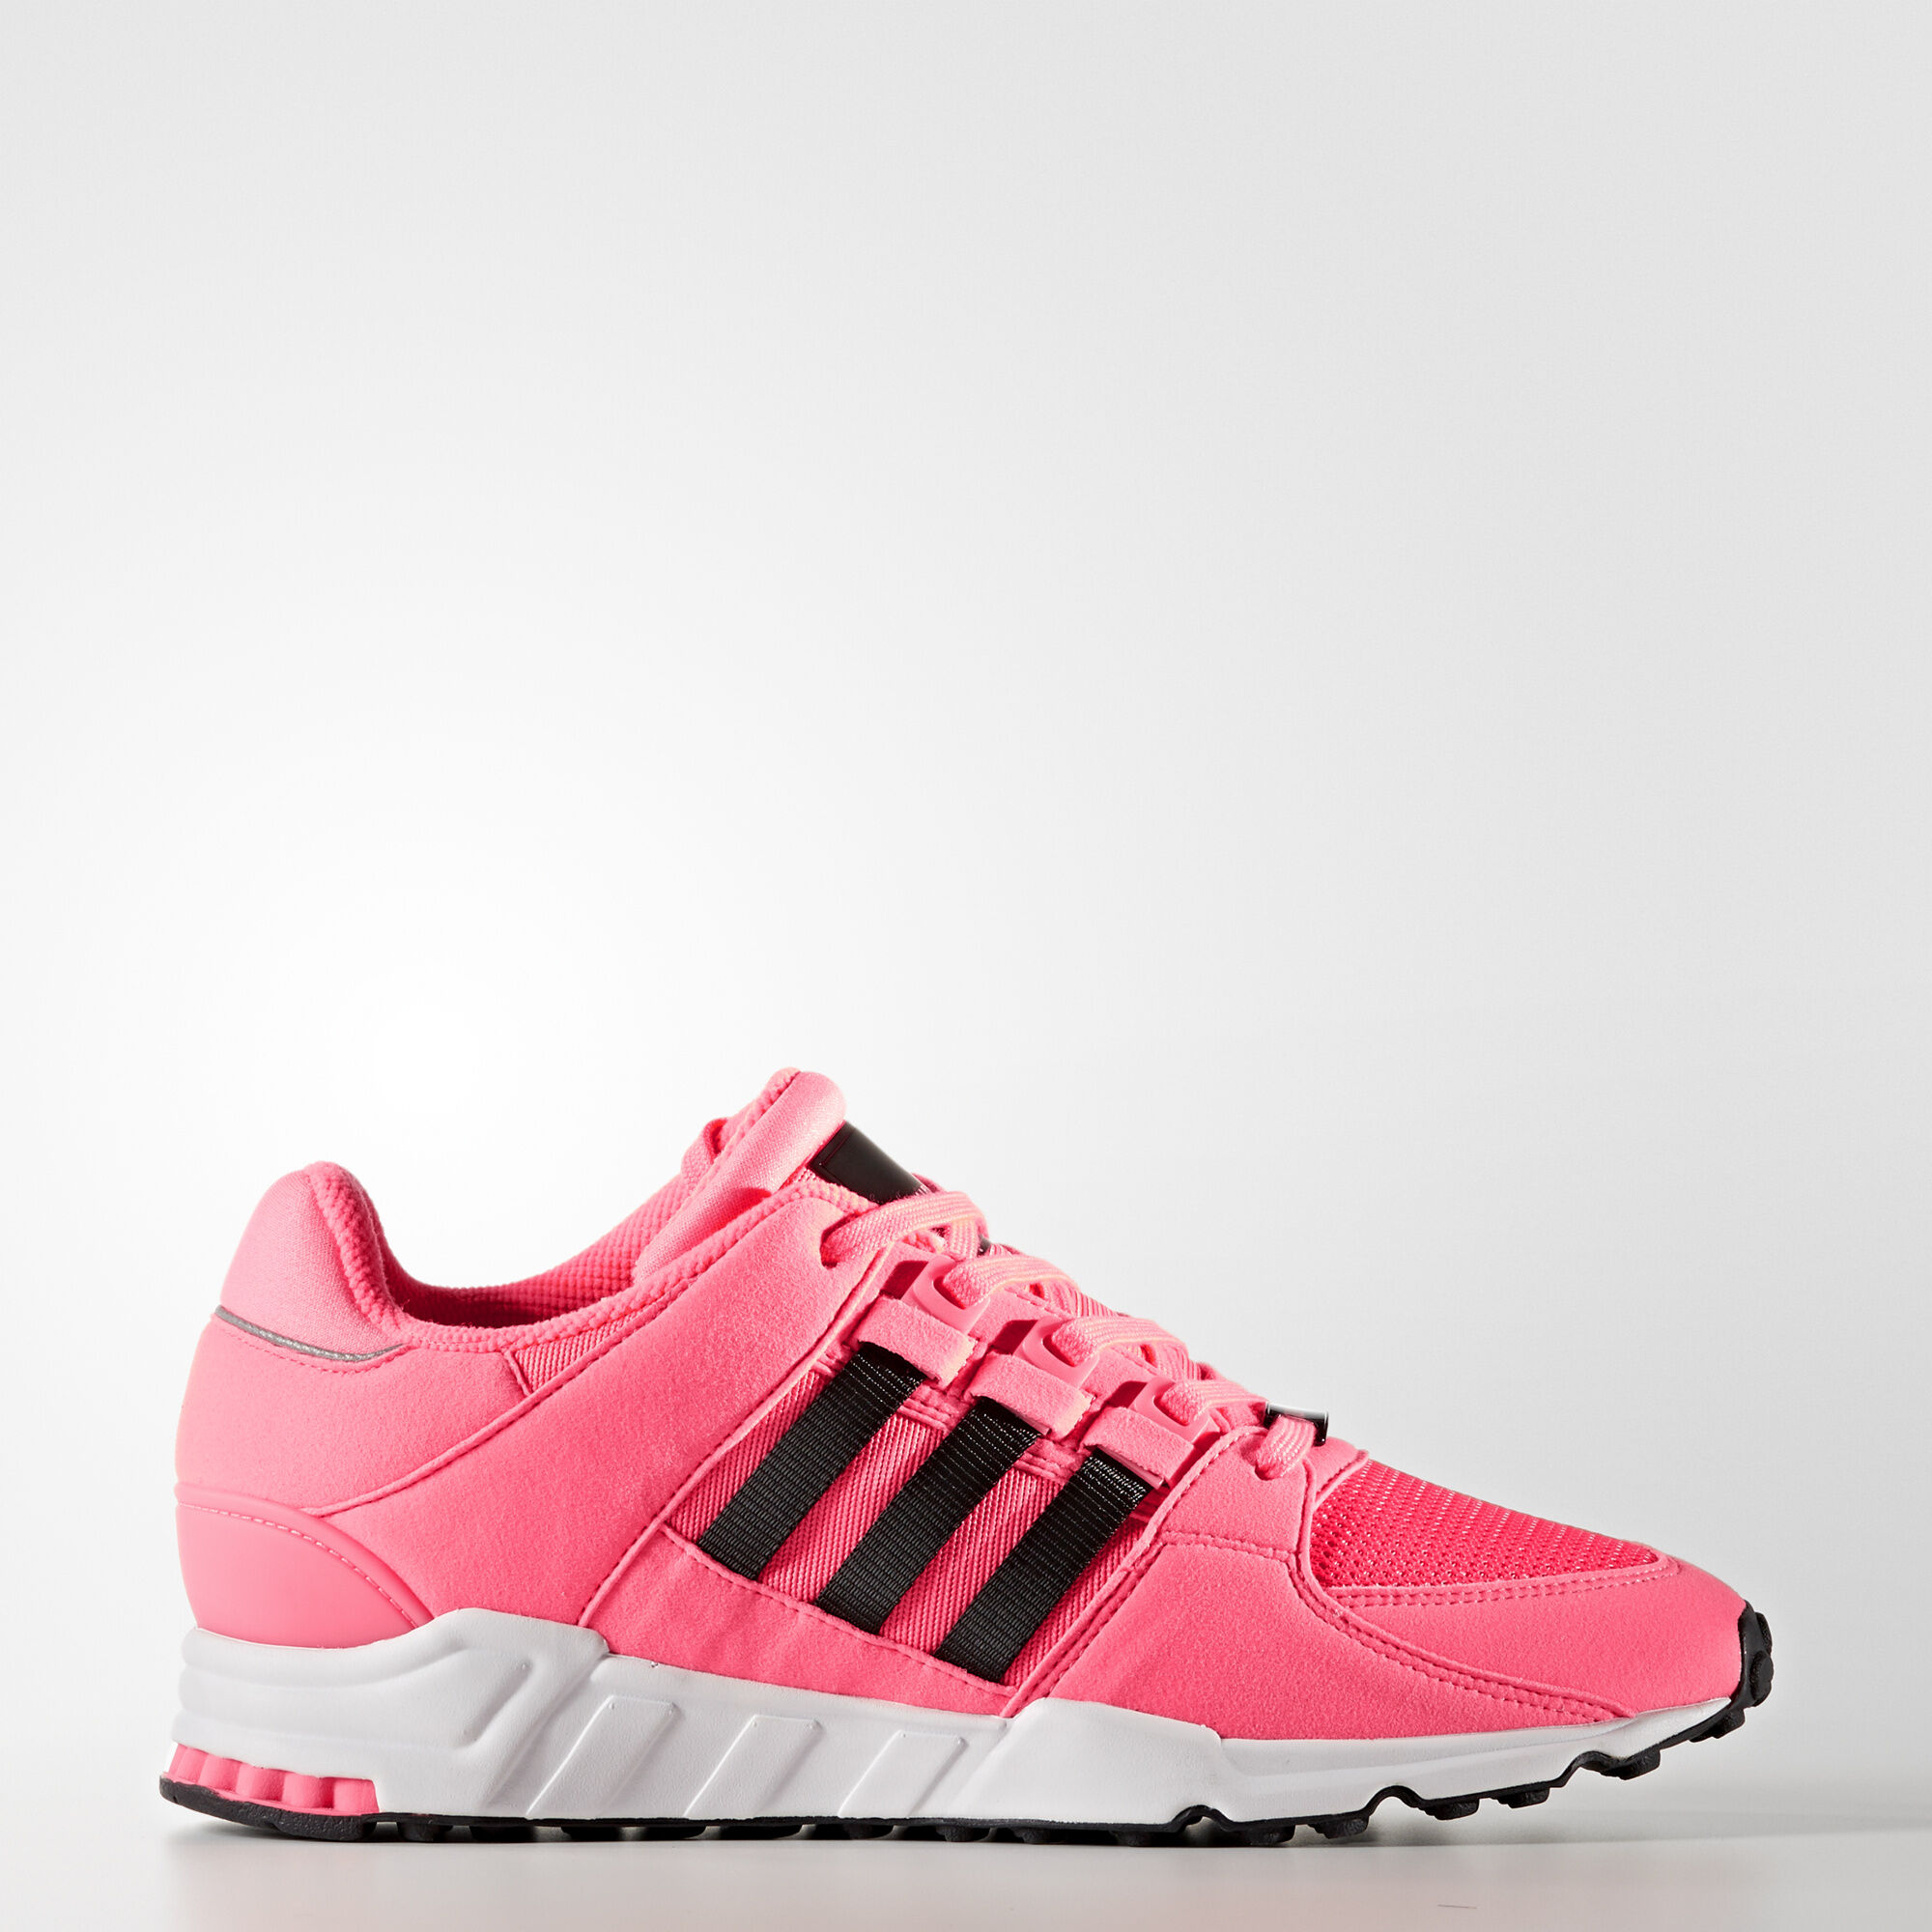 adidas EQT Support RF Core Black BB1312